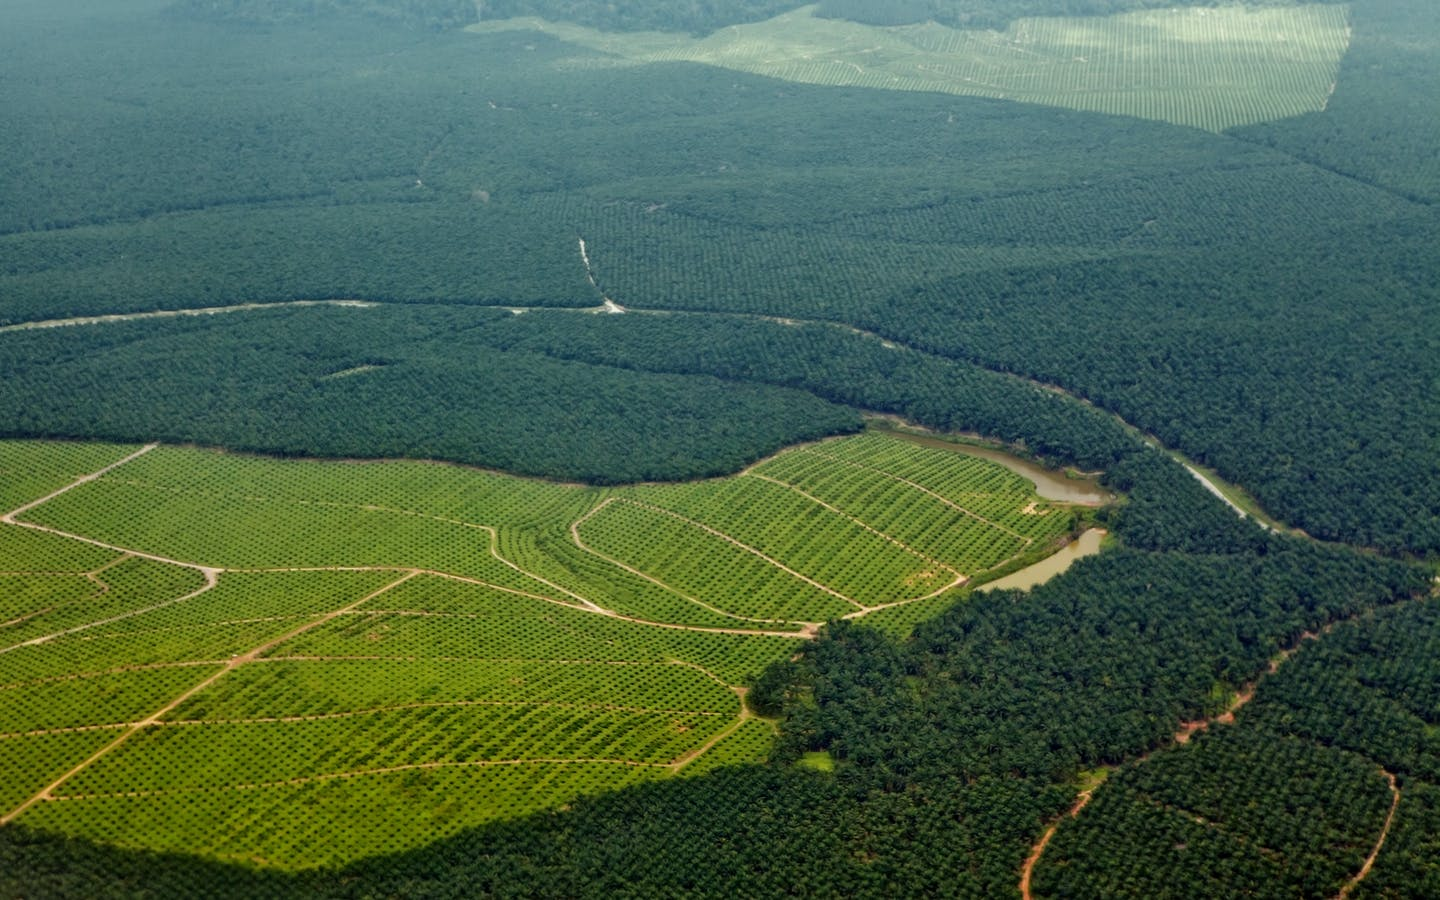 Oil palm plantations in northeastern Borneo, state of Sabah, Malaysia.